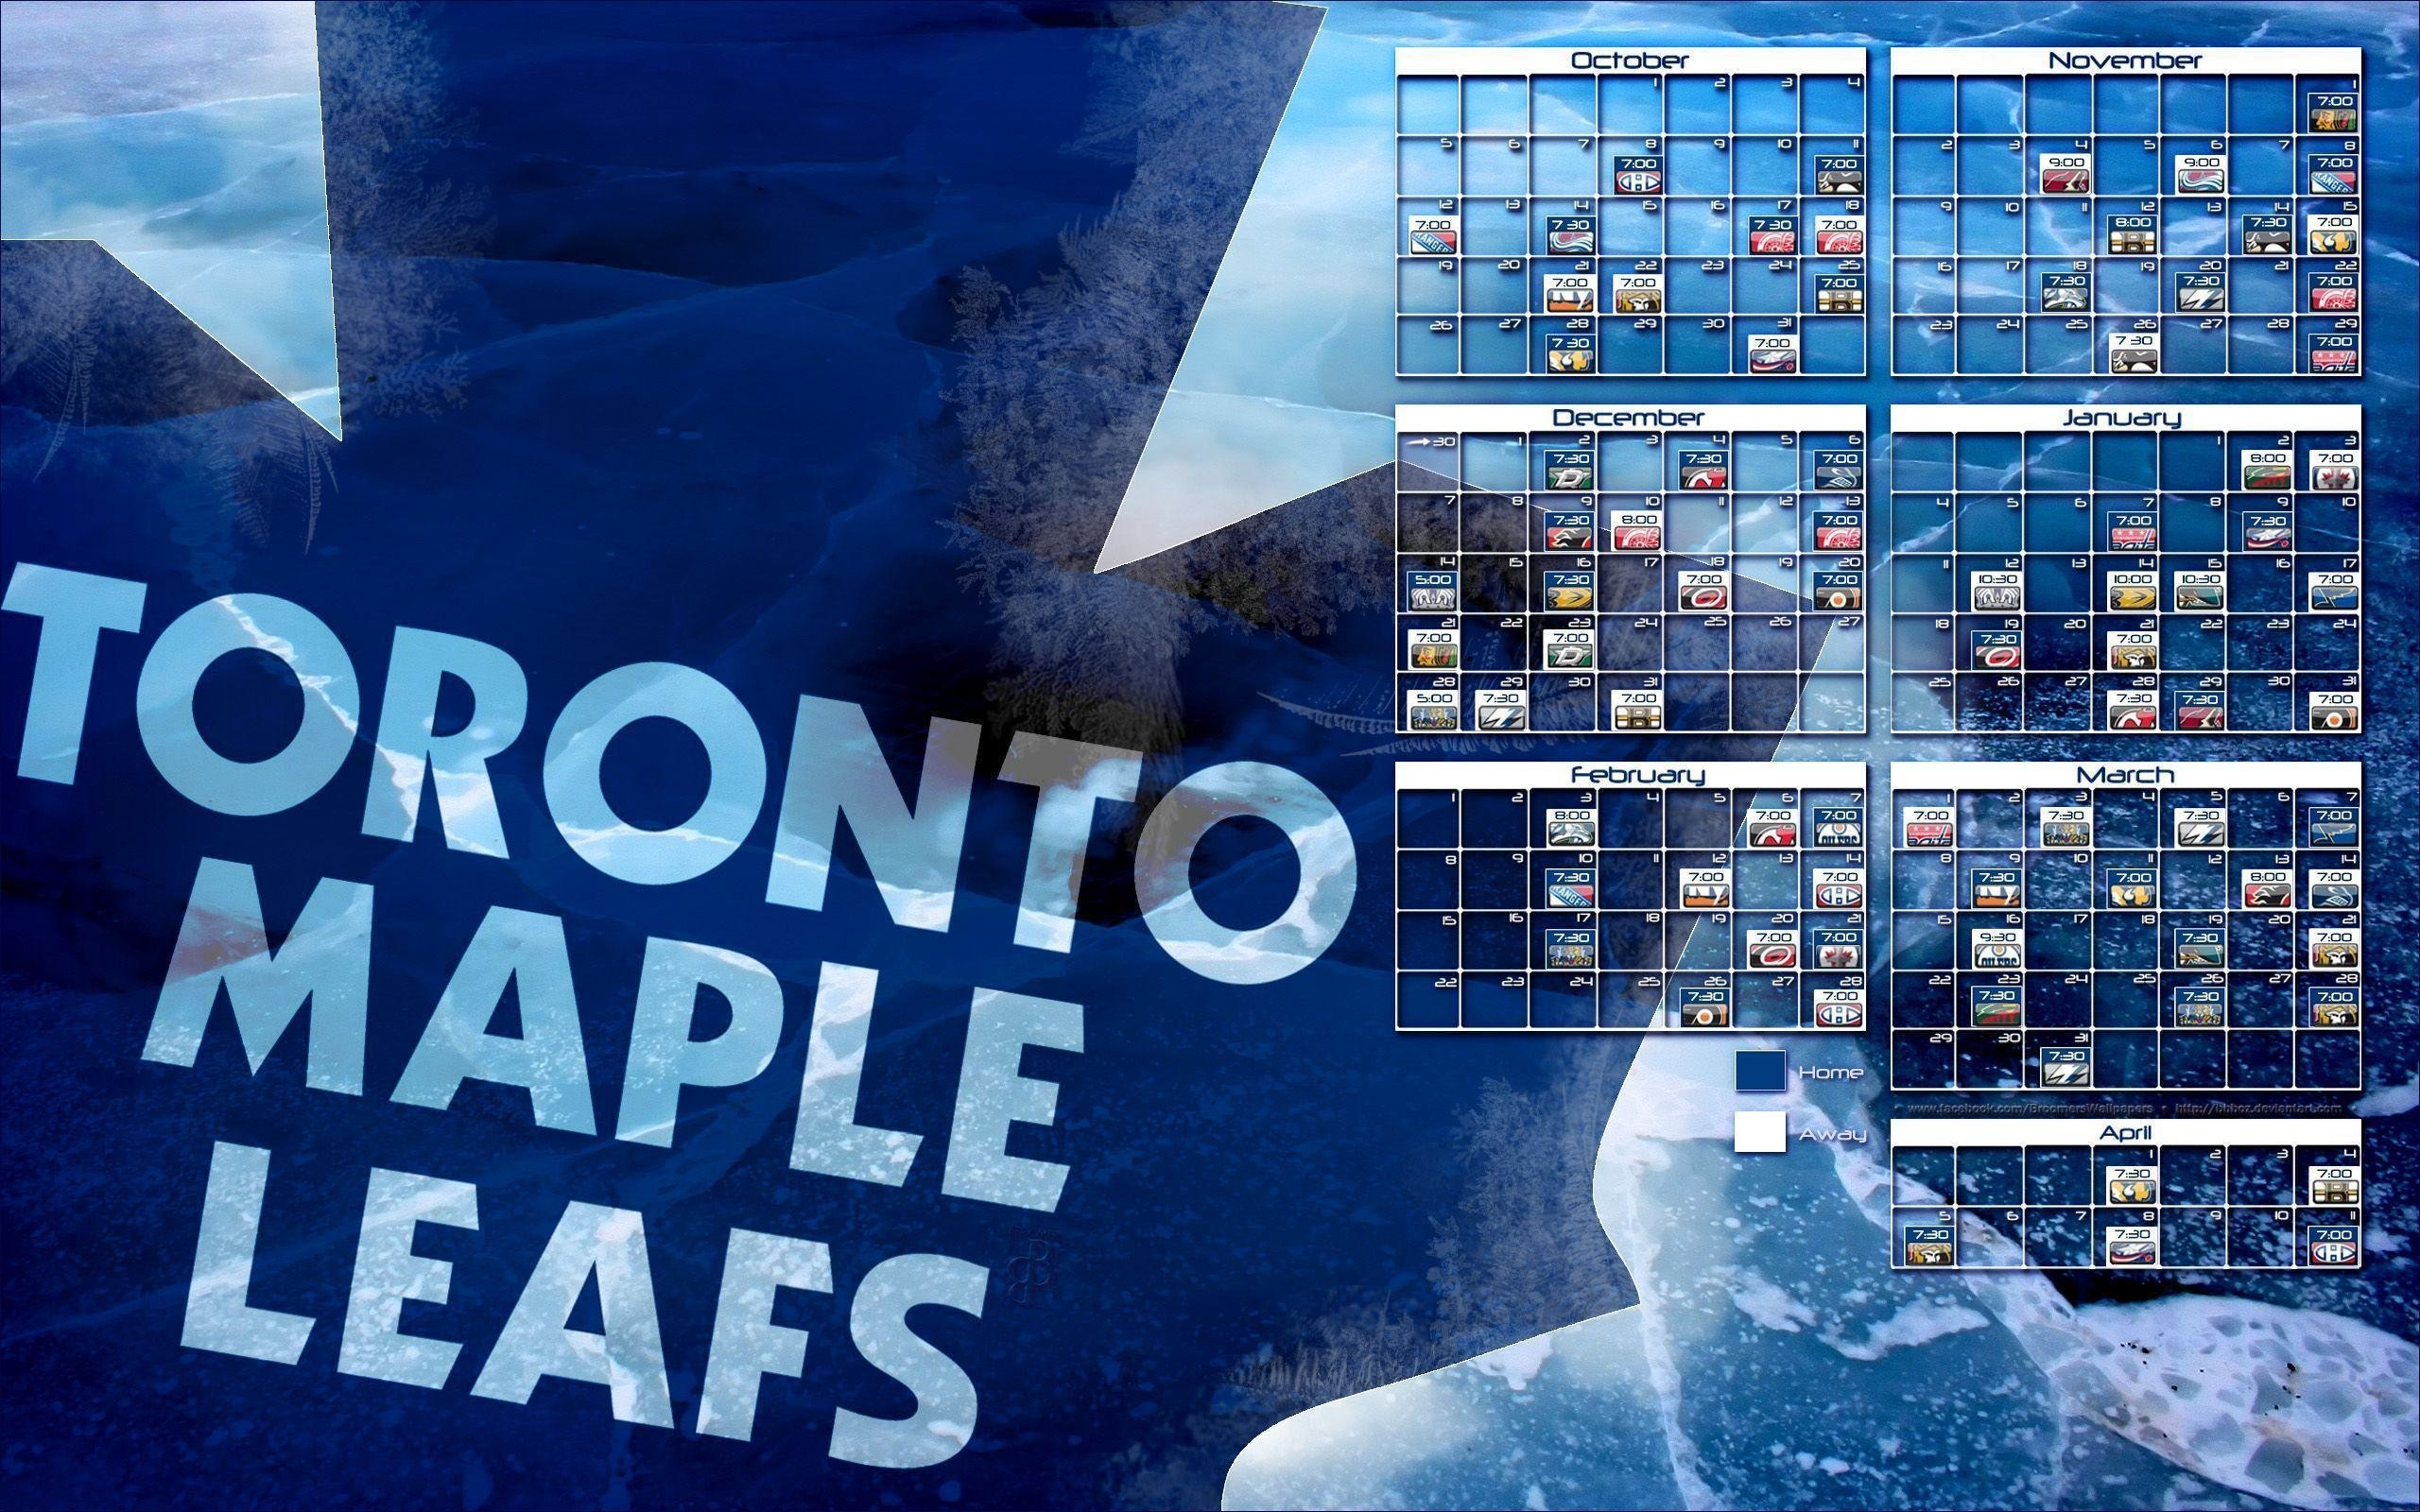 Toronto Maple Leafs Wallpaper 2018 64 Pictures